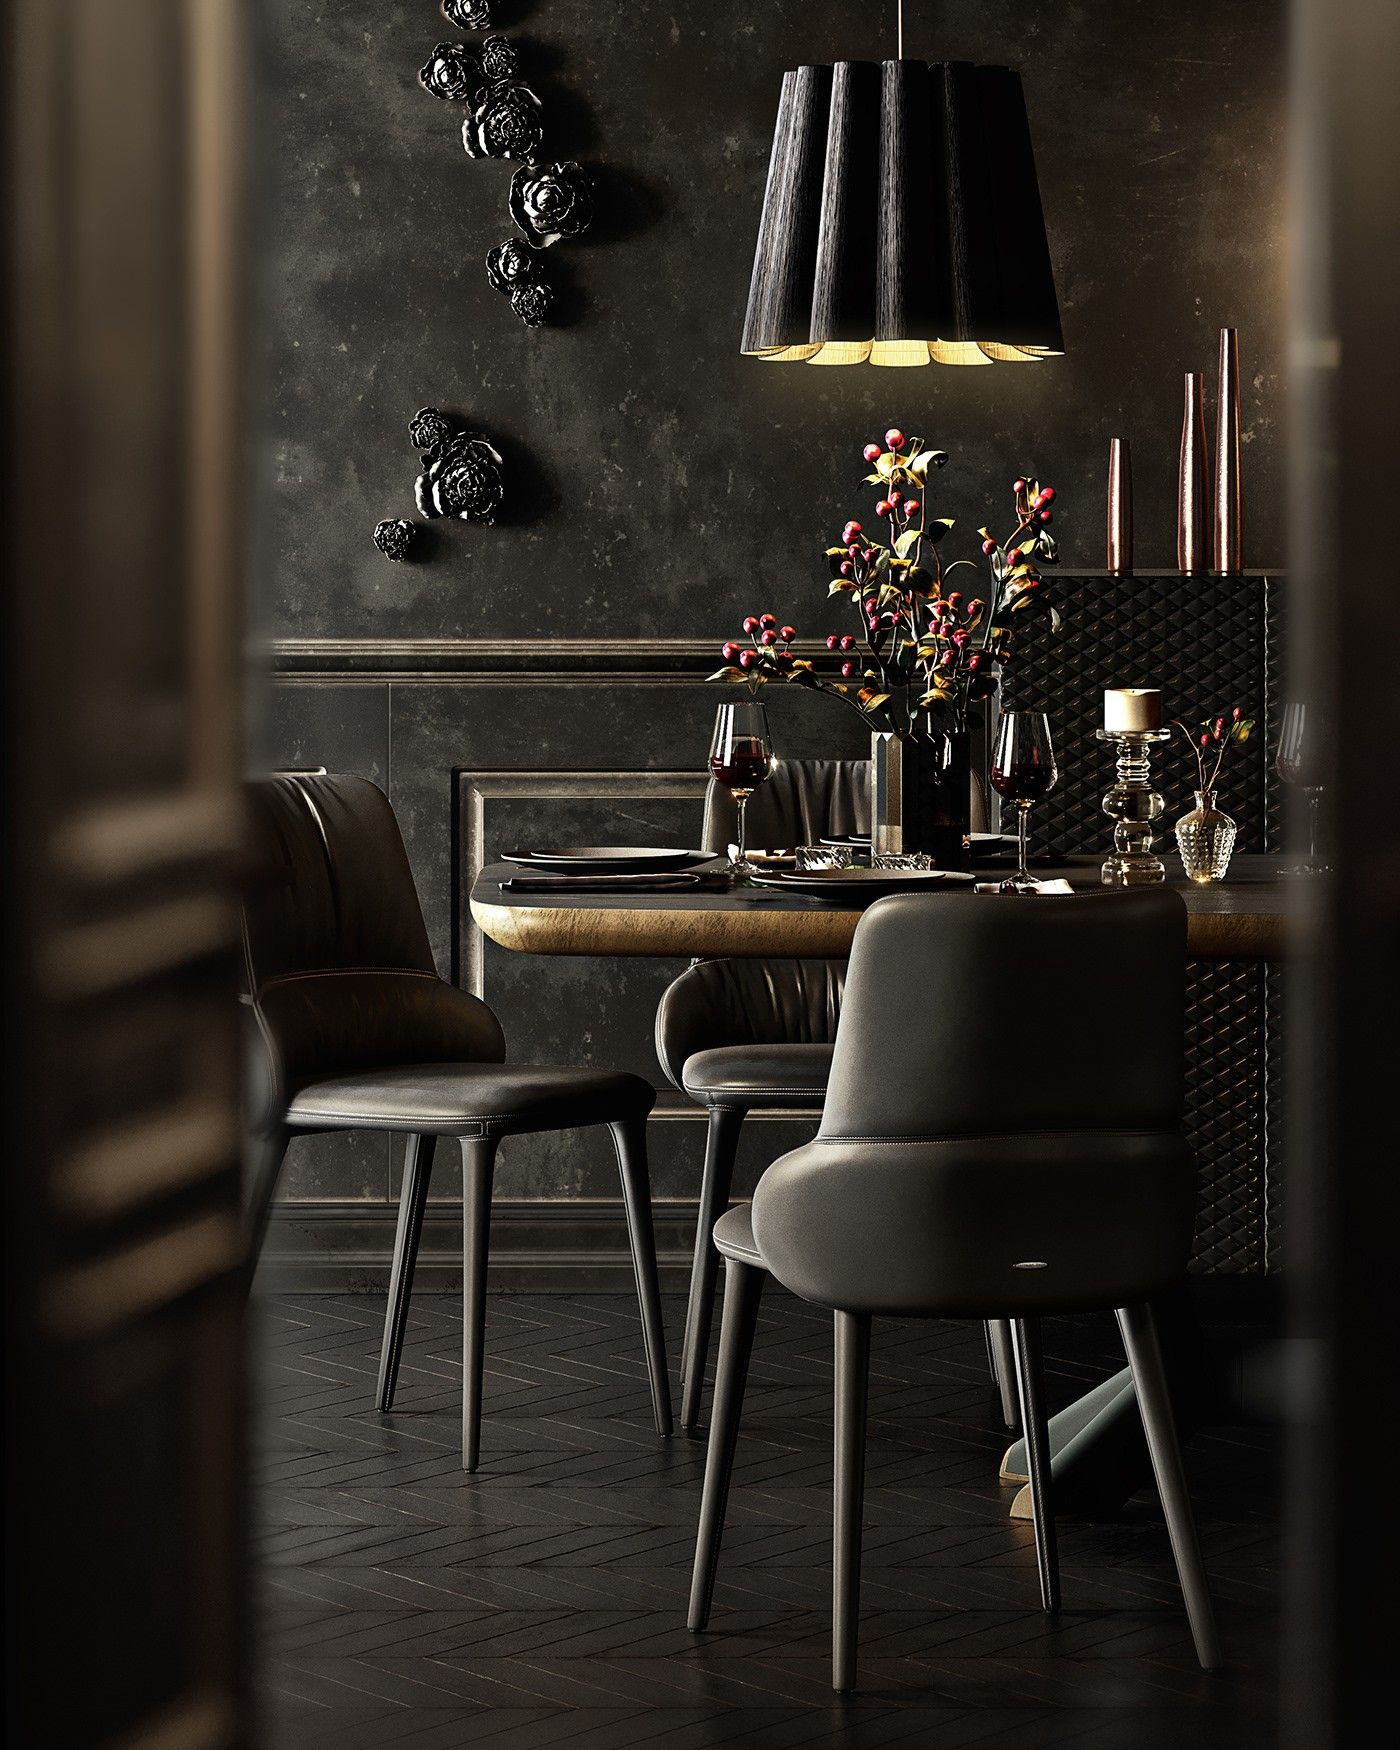 Pin by Charmy Gearing on For the Home Loft interiors